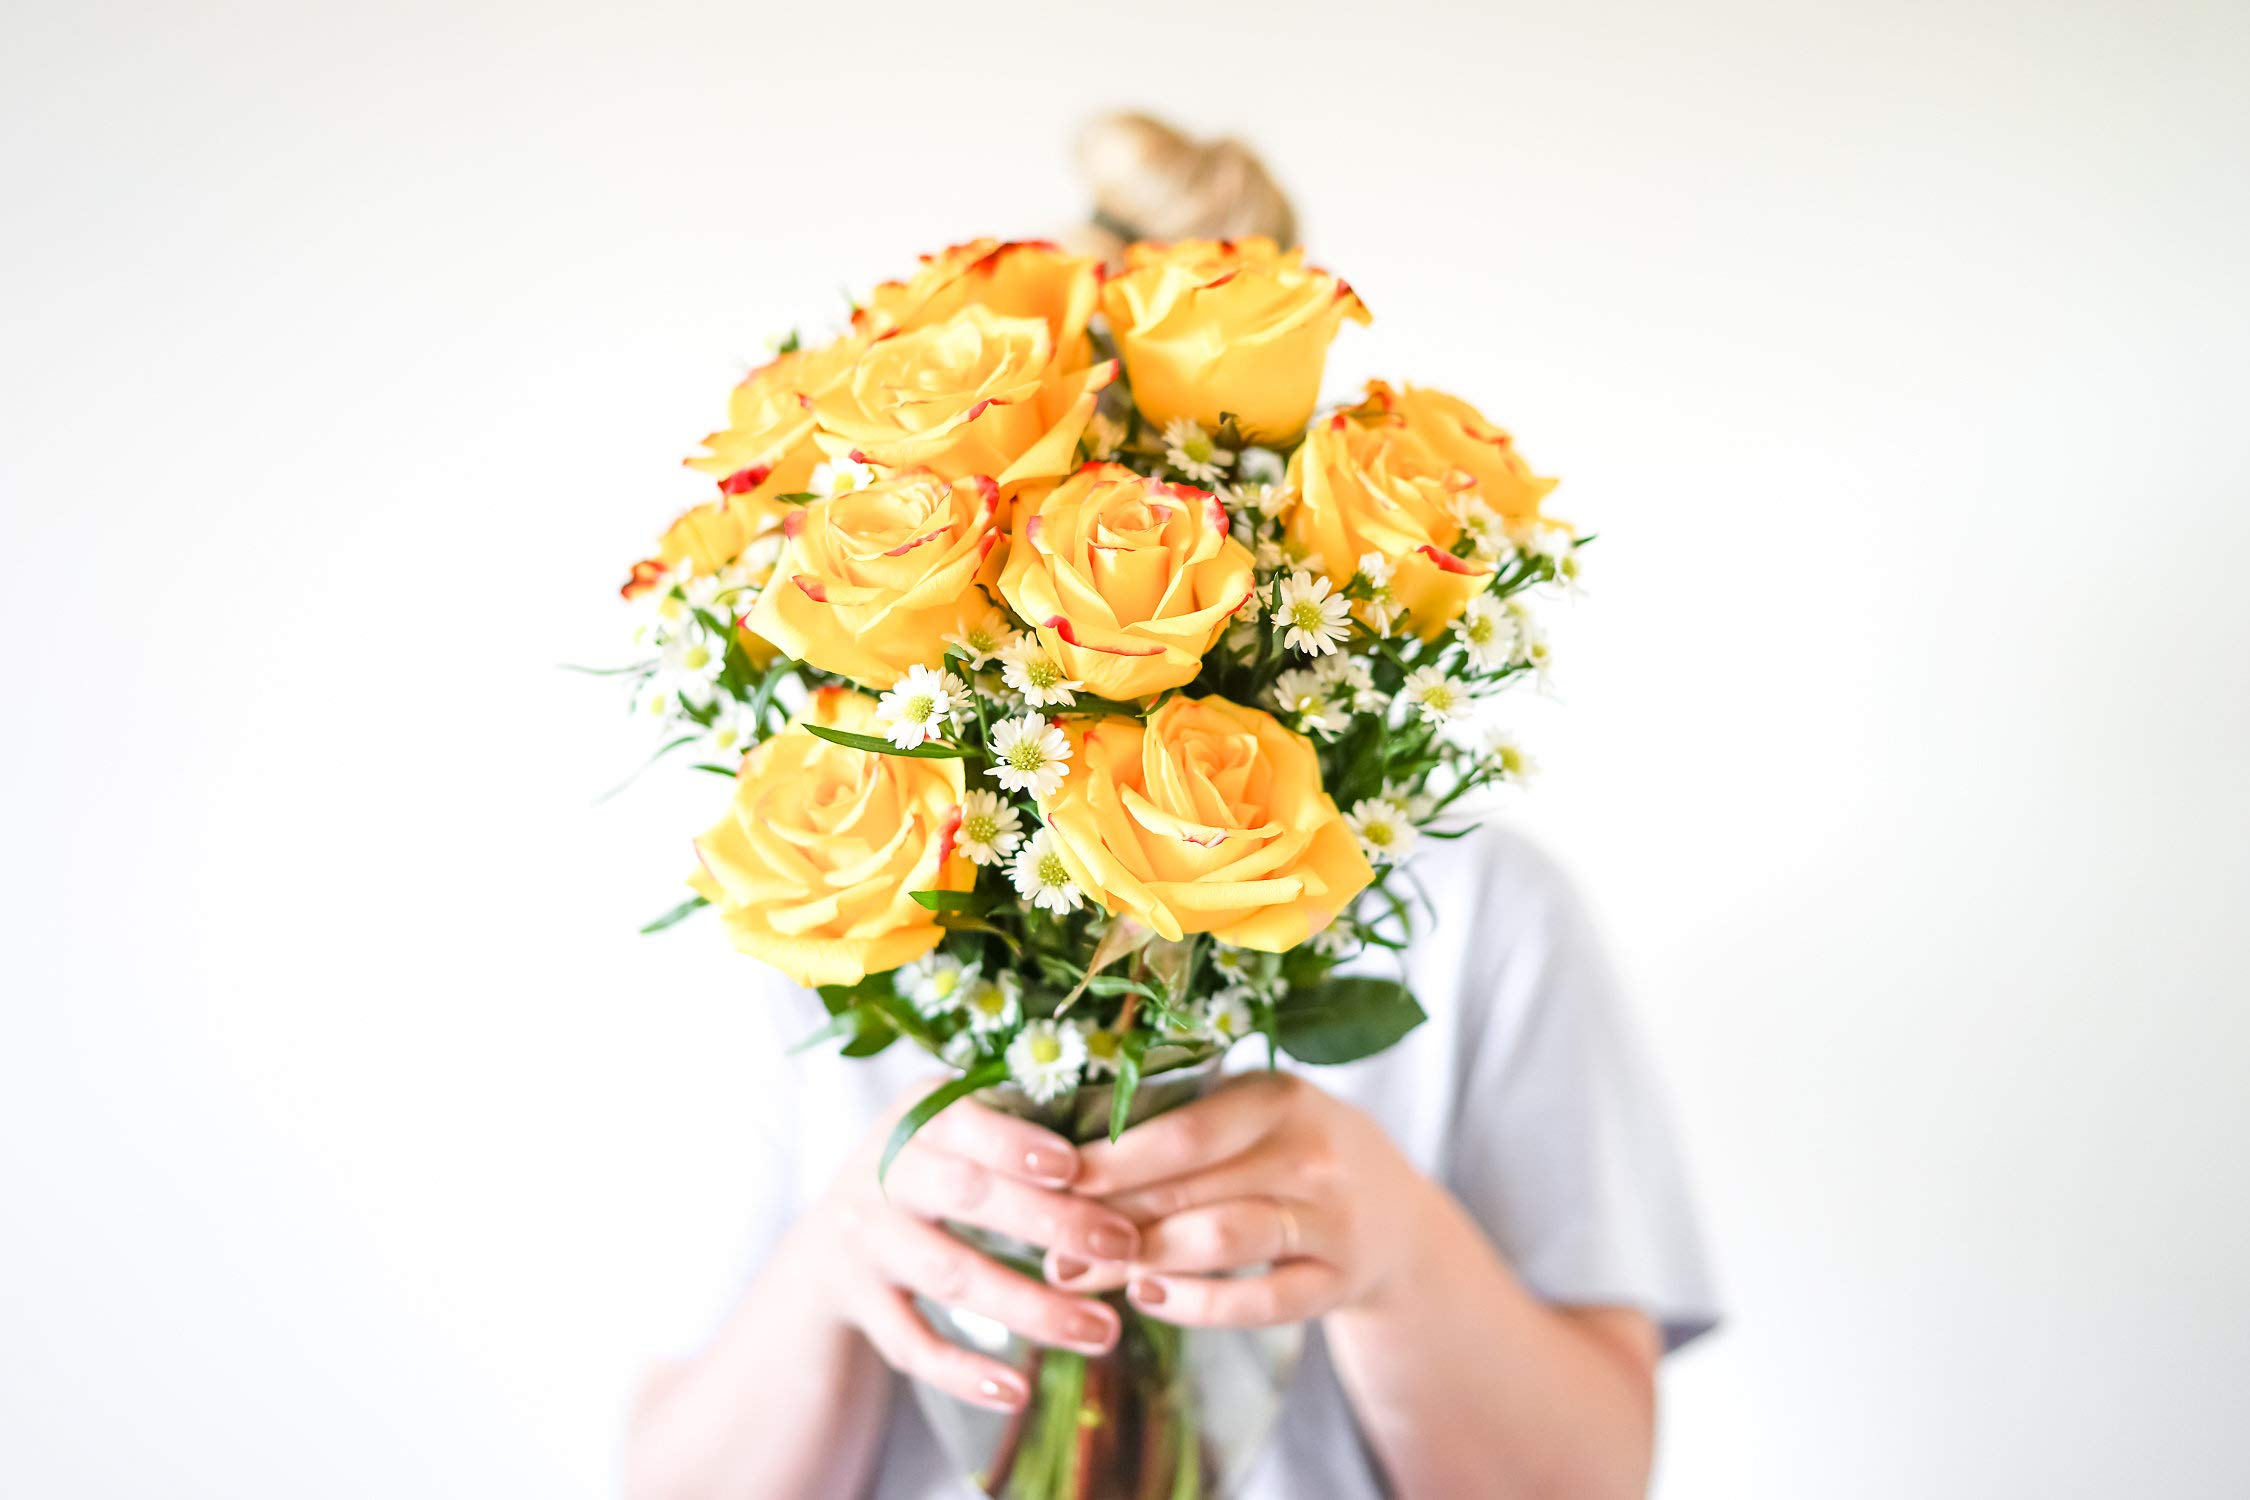 Flowers - One Dozen Festive Roses (Free Vase Included) by From You Flowers (Image #1)